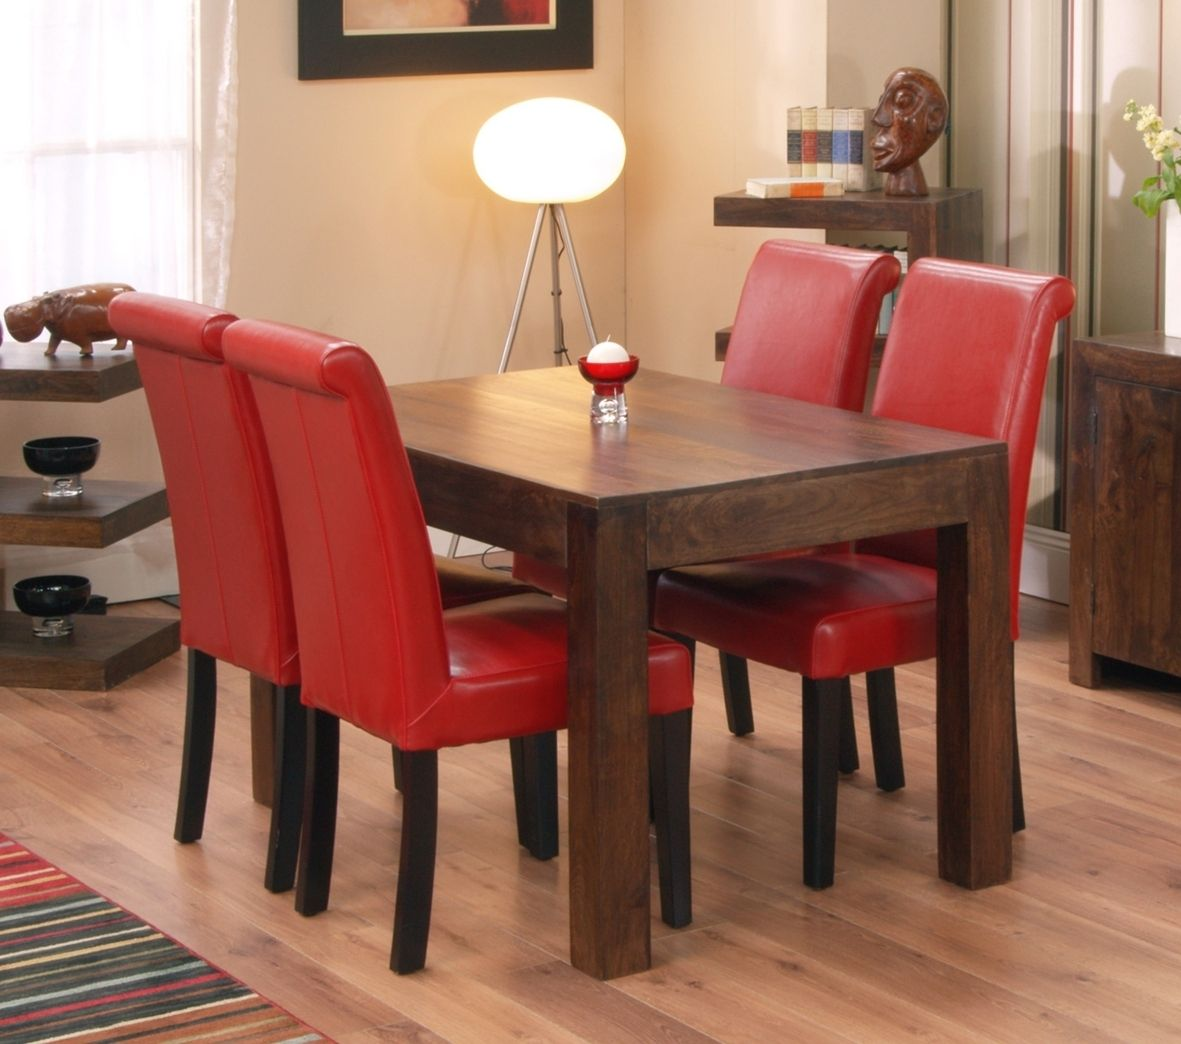 Ordinaire 77 Fantastic Small Dining Room Ideas For Your Tiny Home